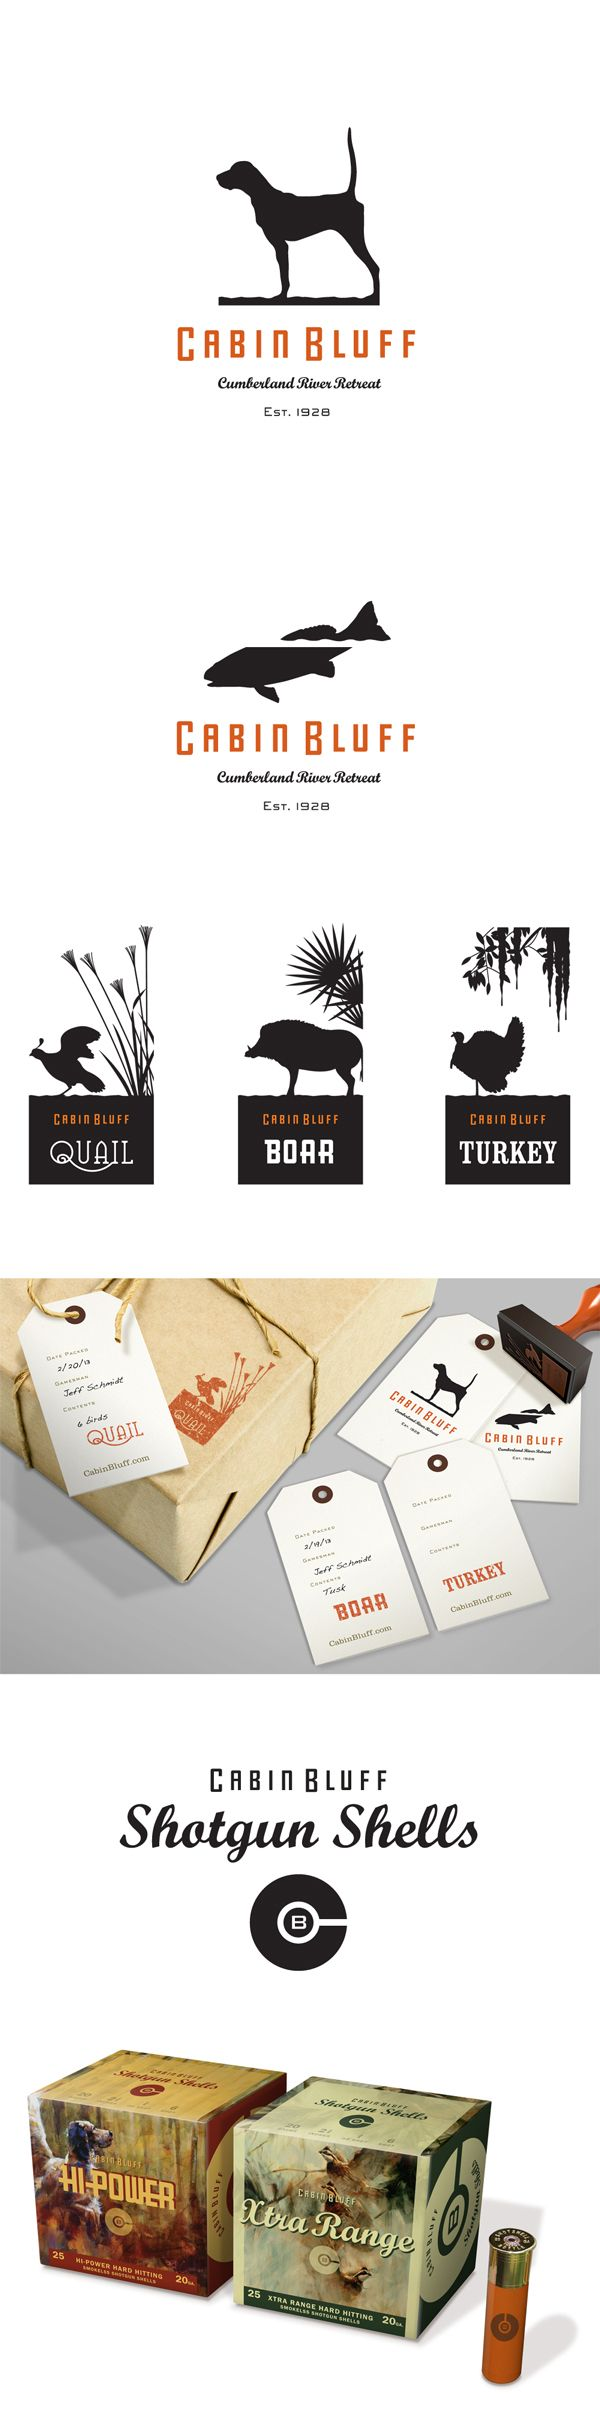 Cabin Bluff – Logo and merchandise marks for a world-class hunting destination.